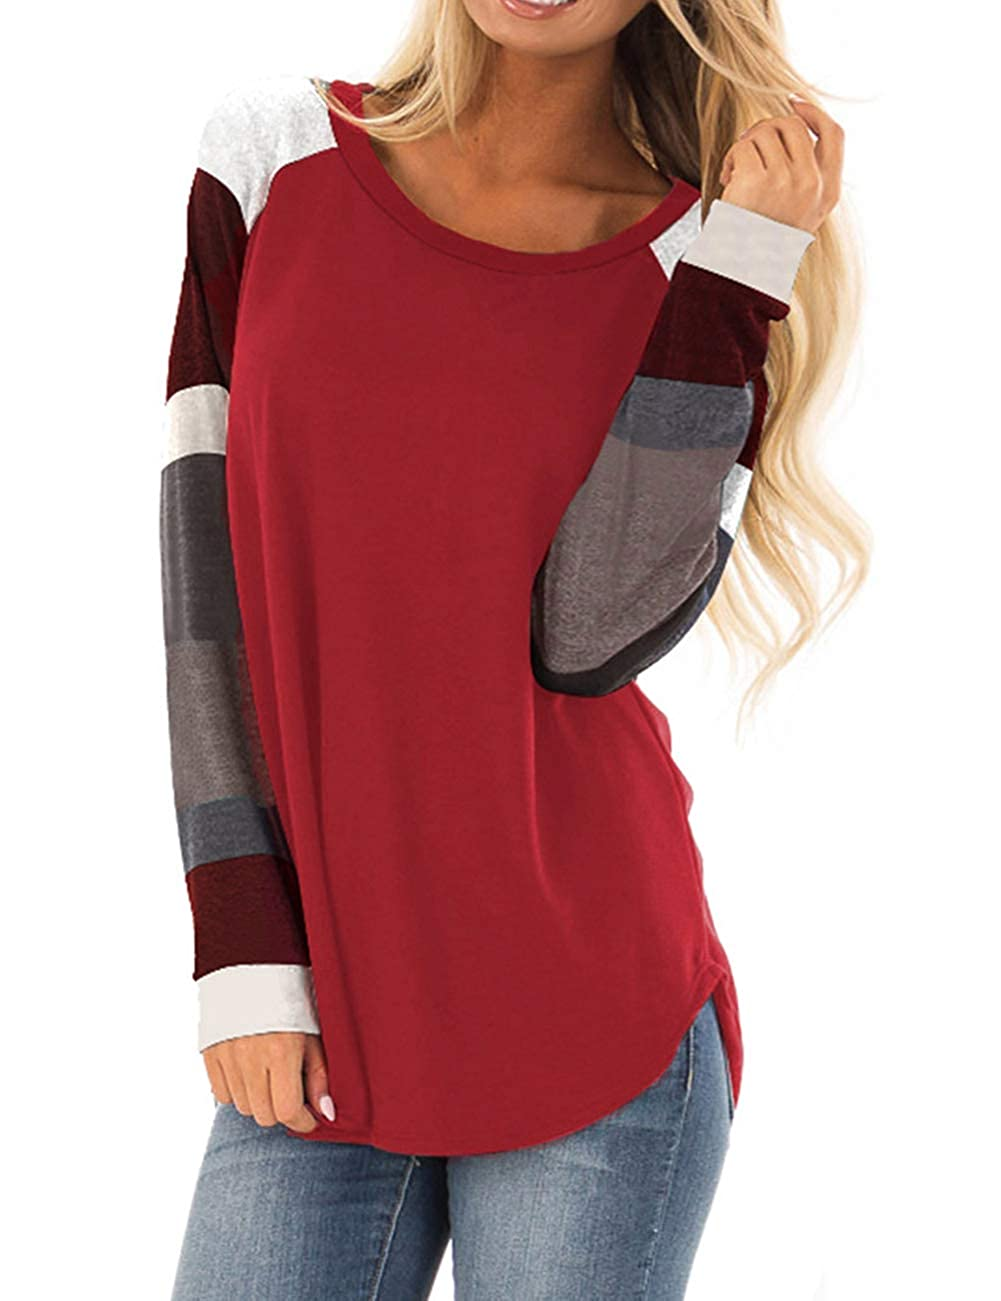 bff351c3d8eab9 Women's Long Sleeve Cotton Knitted Patchwork Casual Tunic Sweatshirt Tops  Patchwork-RL01